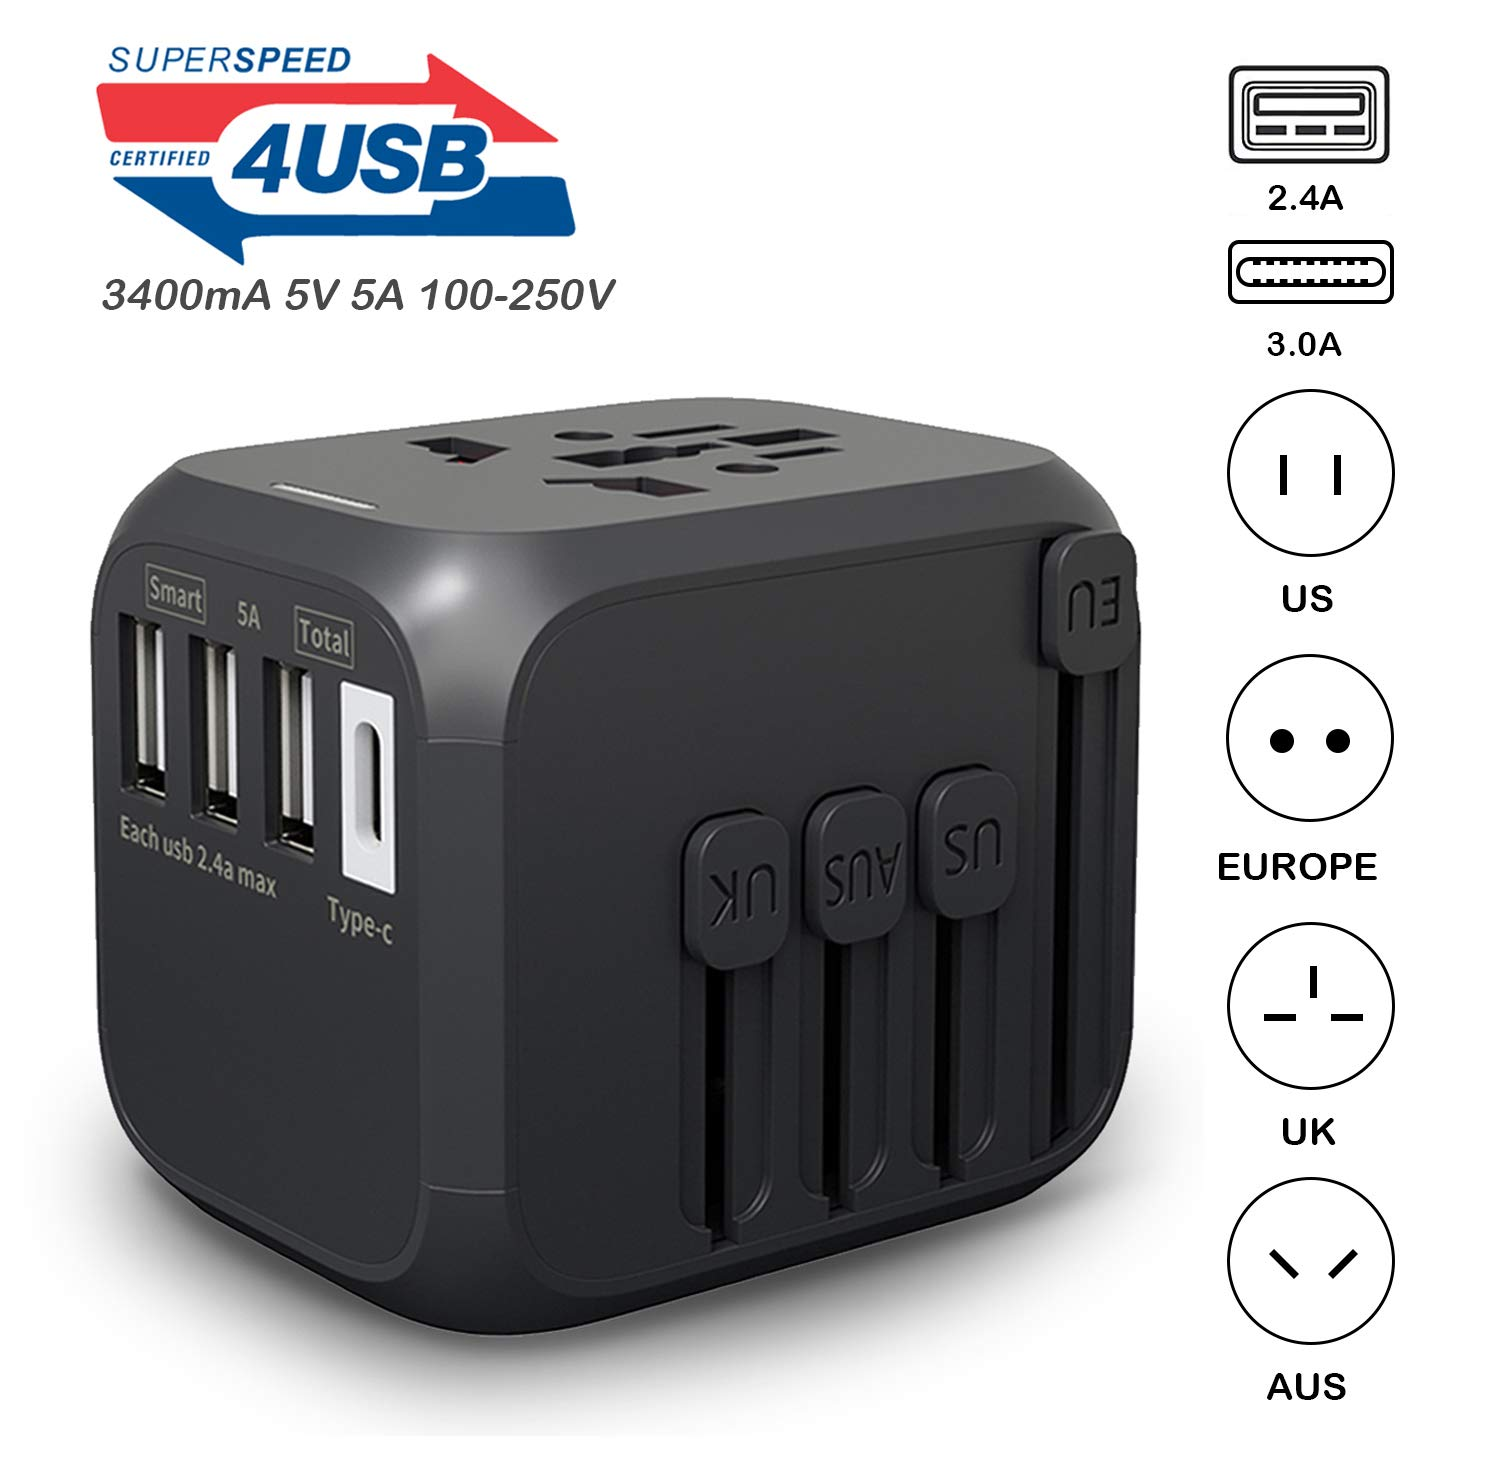 International Travel Adapter with Auto Resetting Fuse Universal Power Adapters 4 USB and Type C Ports Worldwide All in One Plugs Converter with AC Outlet Wall Charger for US EU UK AU European Italy